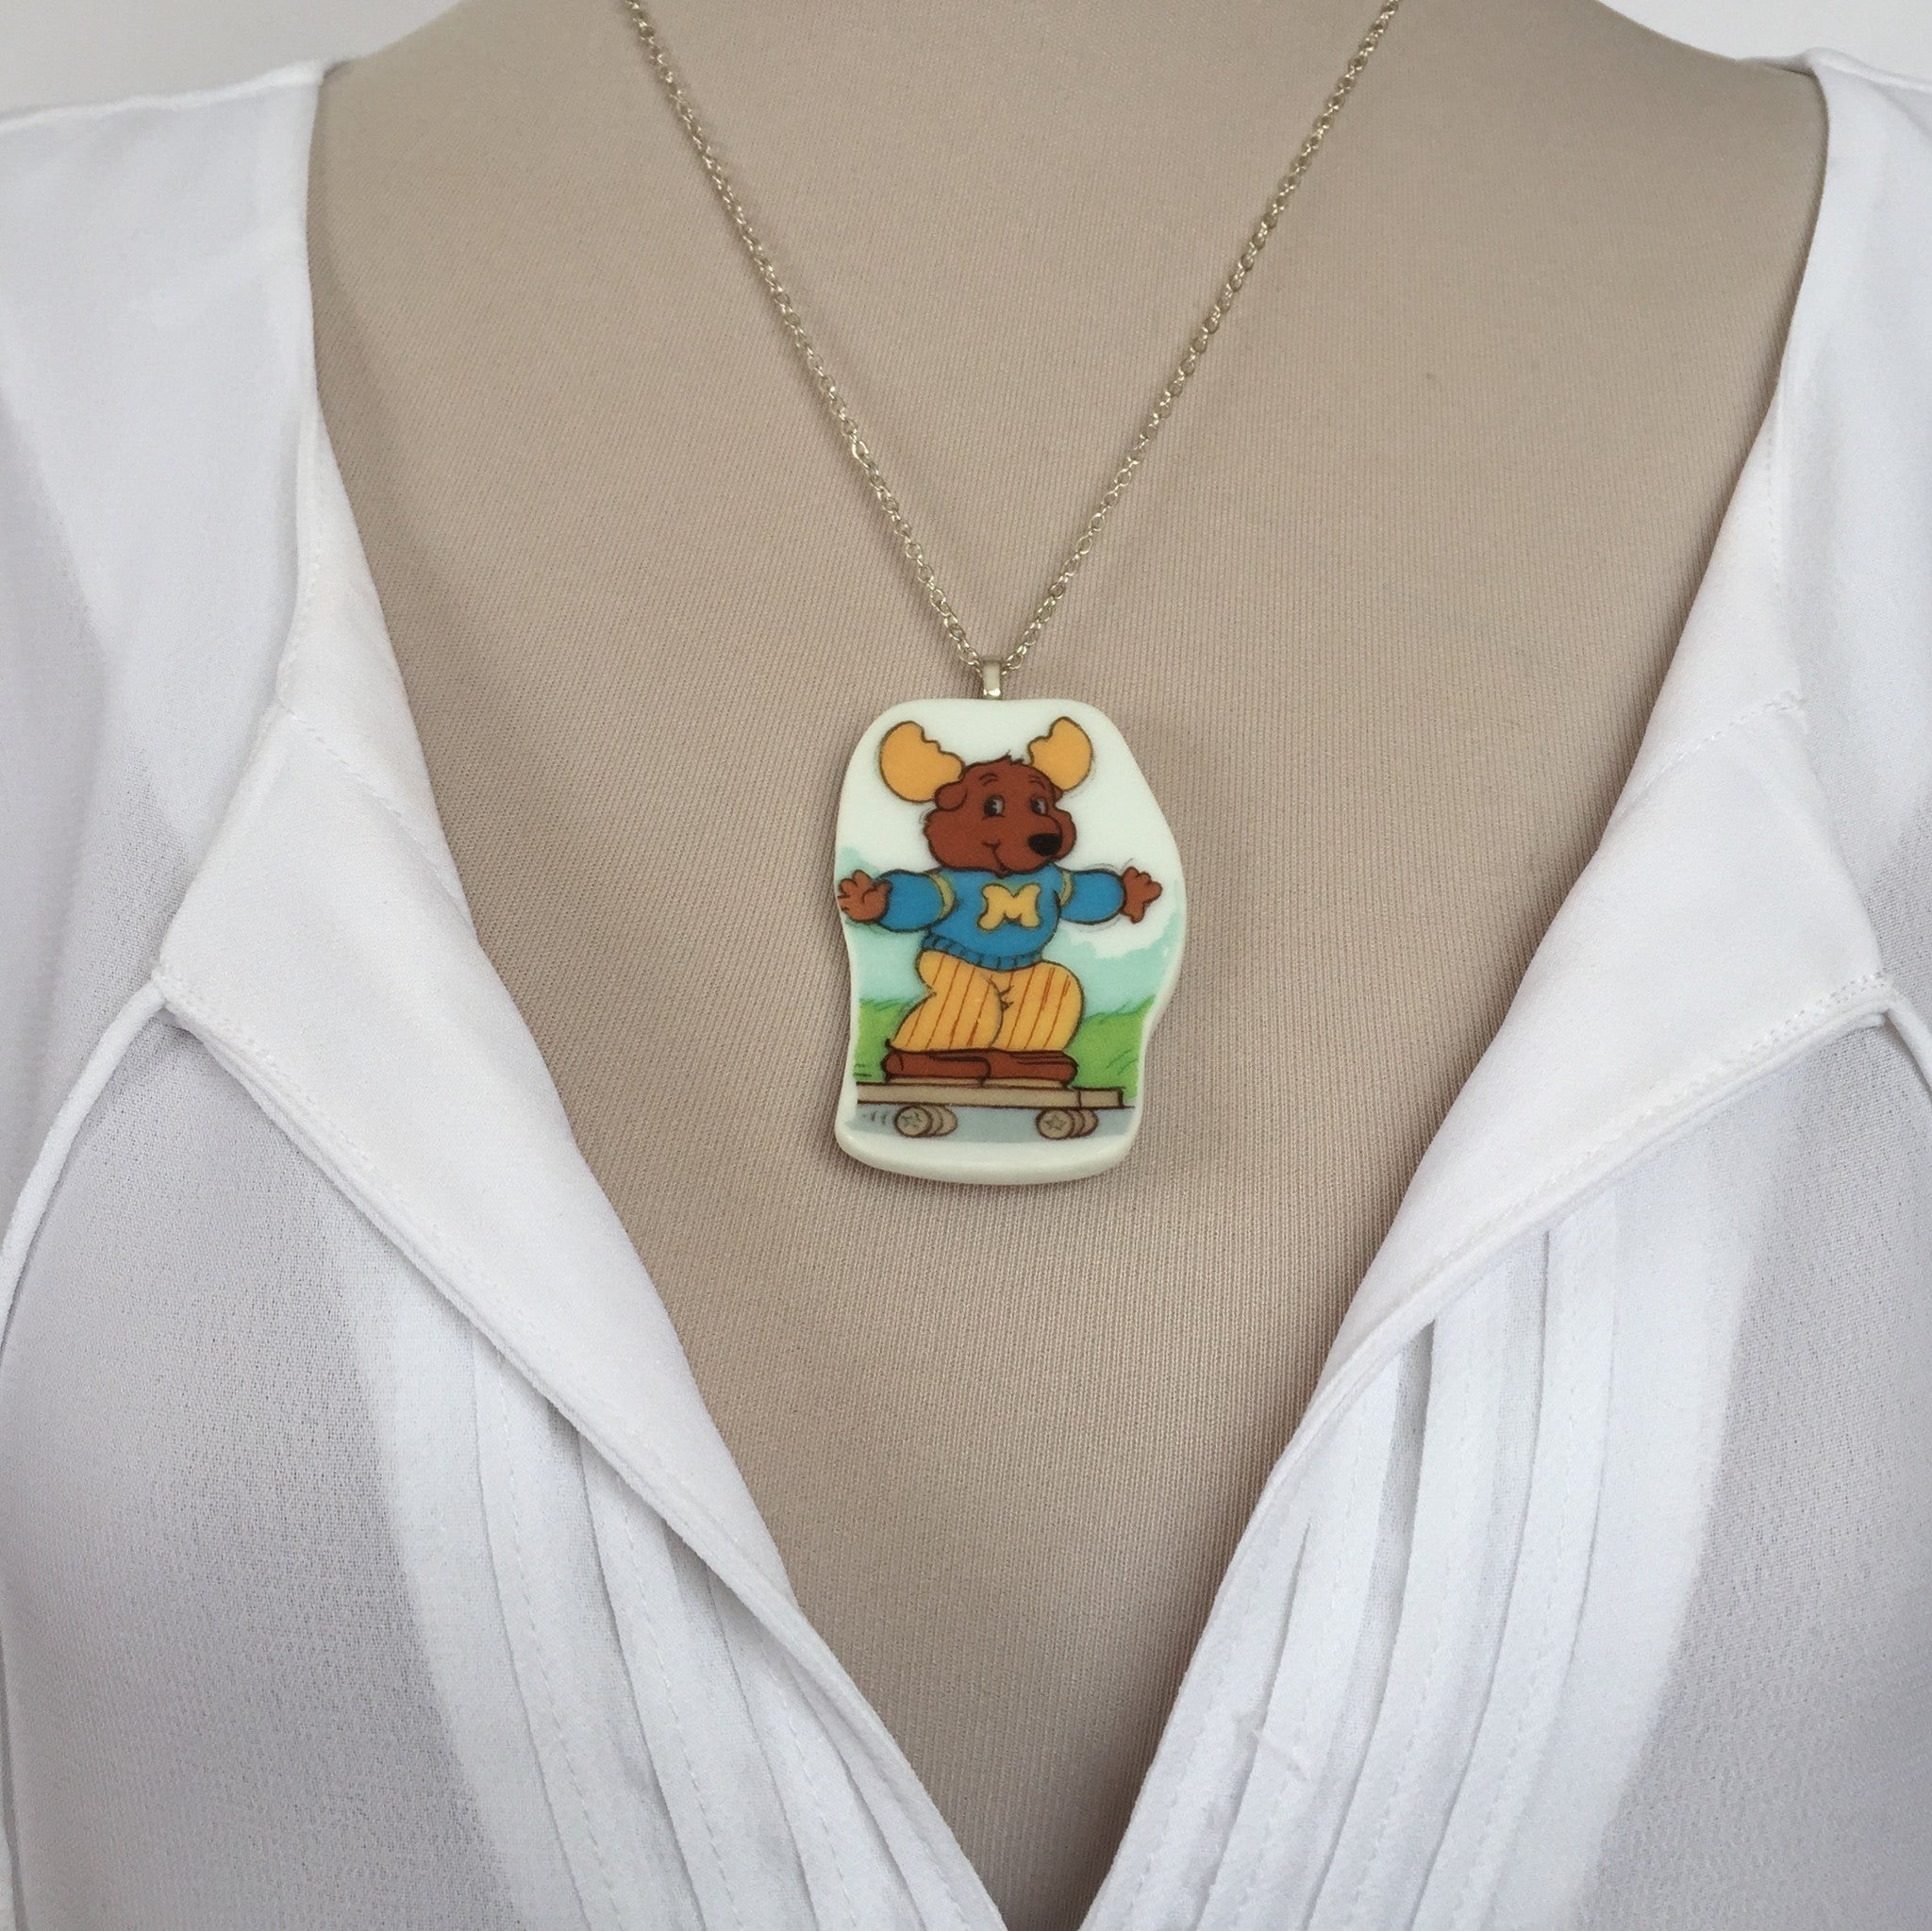 Get along gang Montgomery moose necklace - broken china jewelry